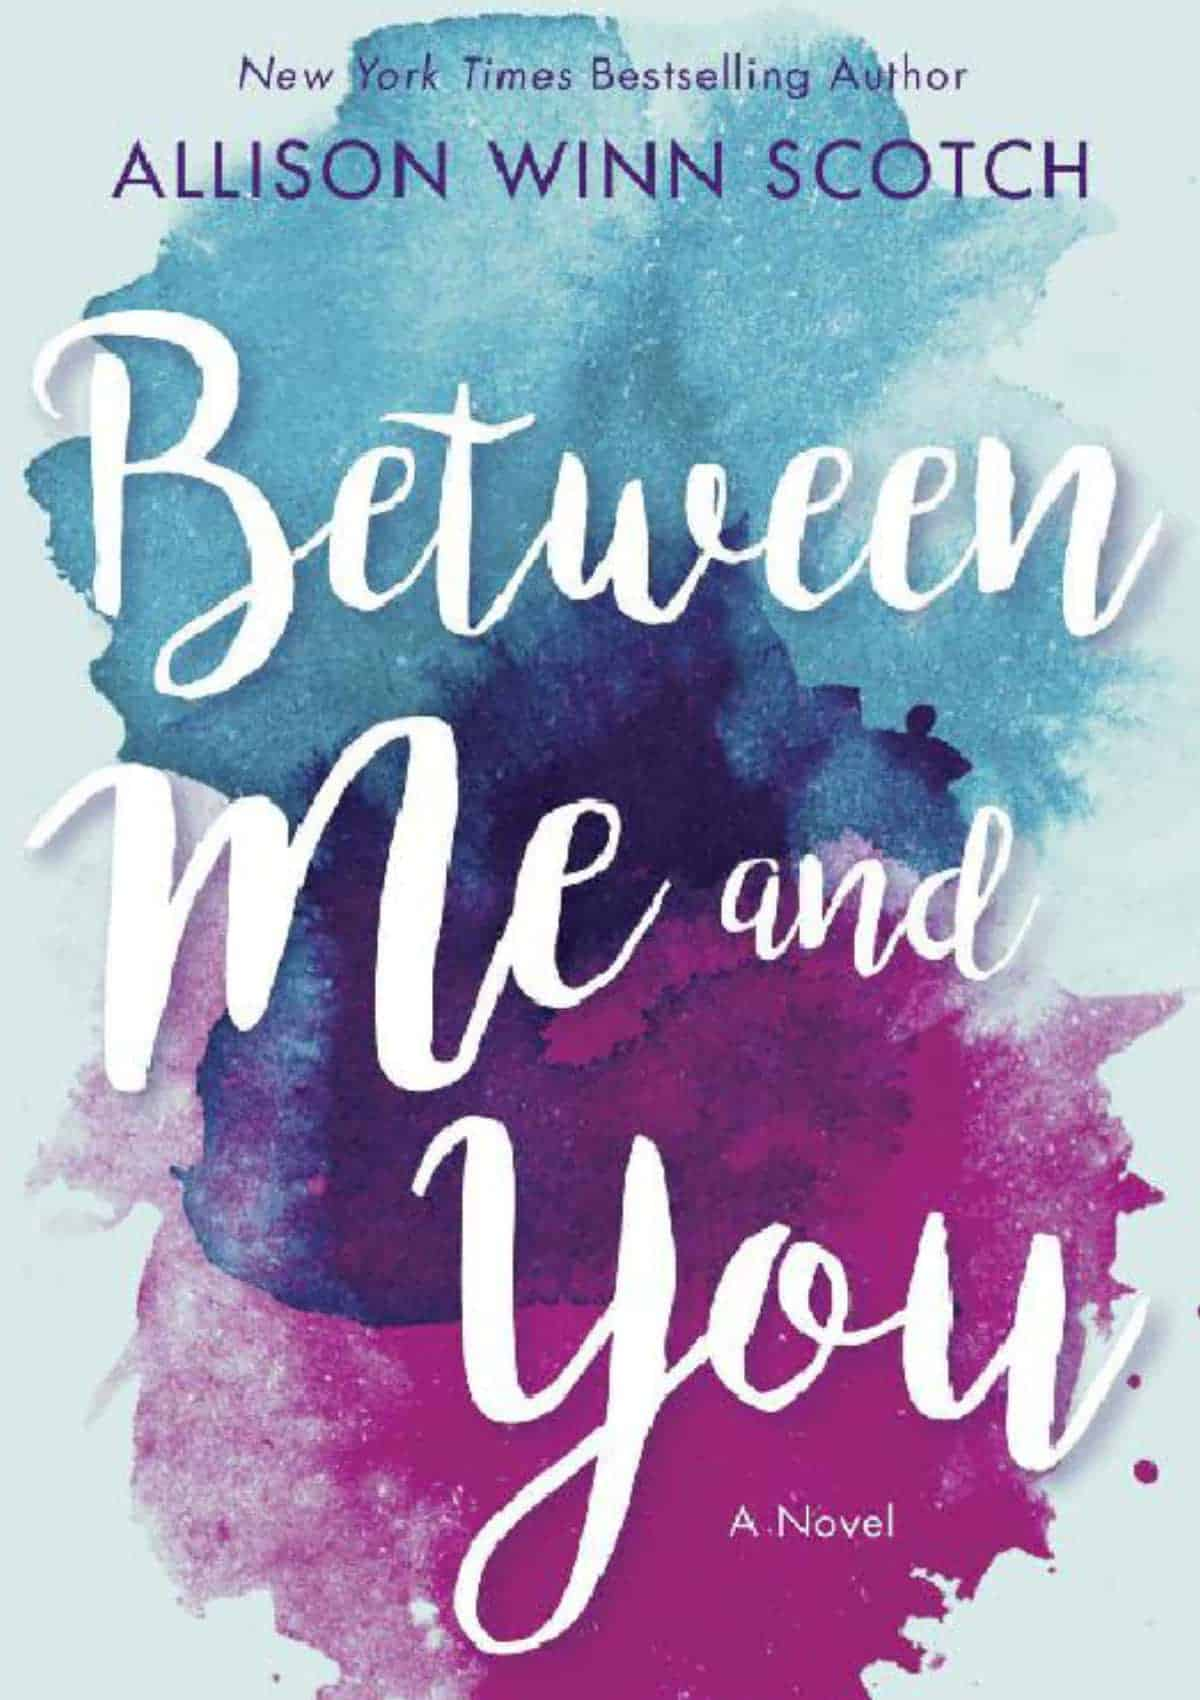 Your Engaged Cousin: Between Me and You by Allison Winn Scotch | Top Kindle Books of 2018 | Gift Ideas For Each Member of the Family